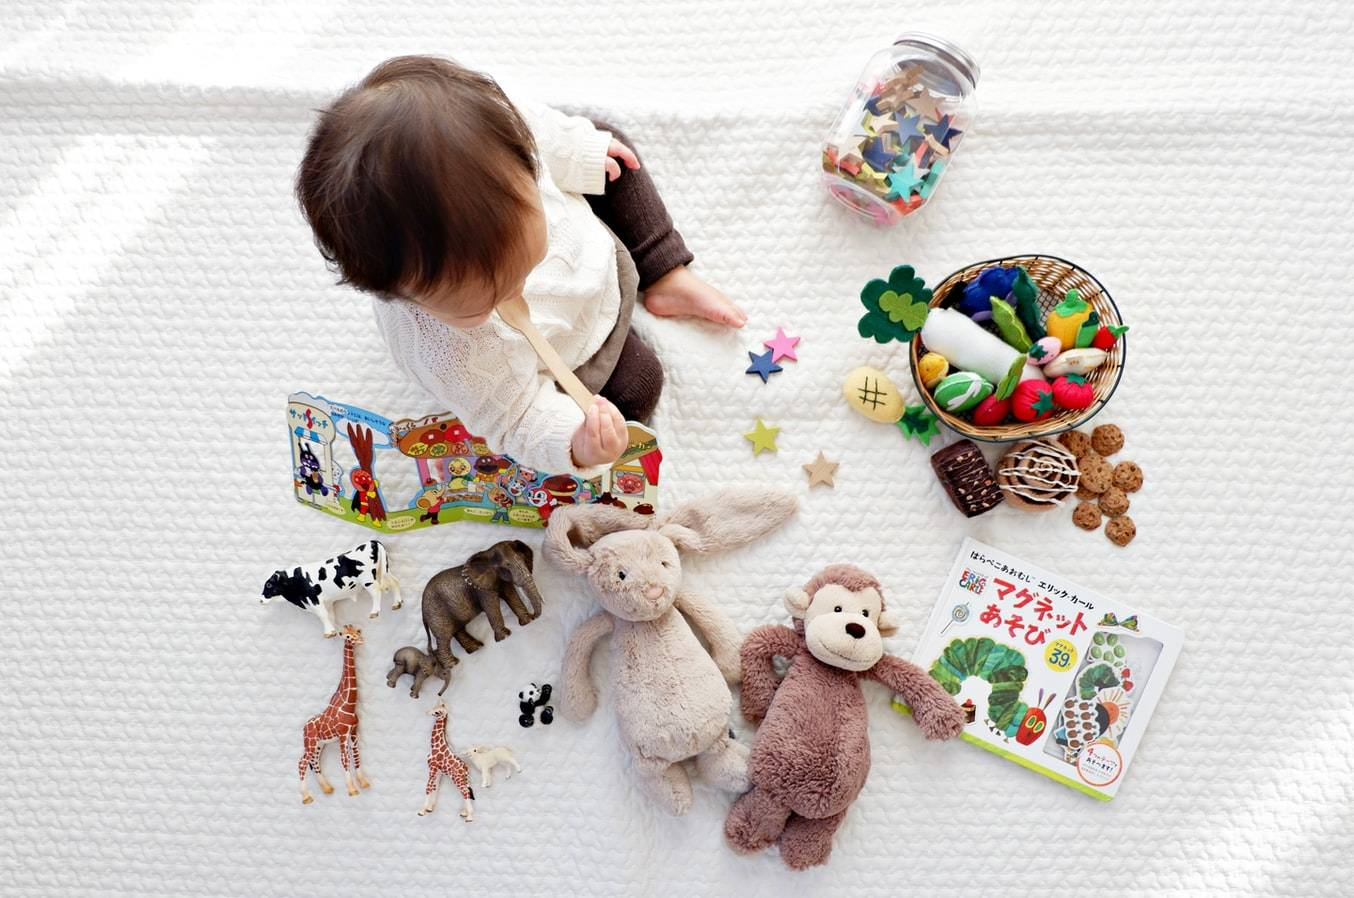 Baby Sitting On White Cloth Surrounded By Toys